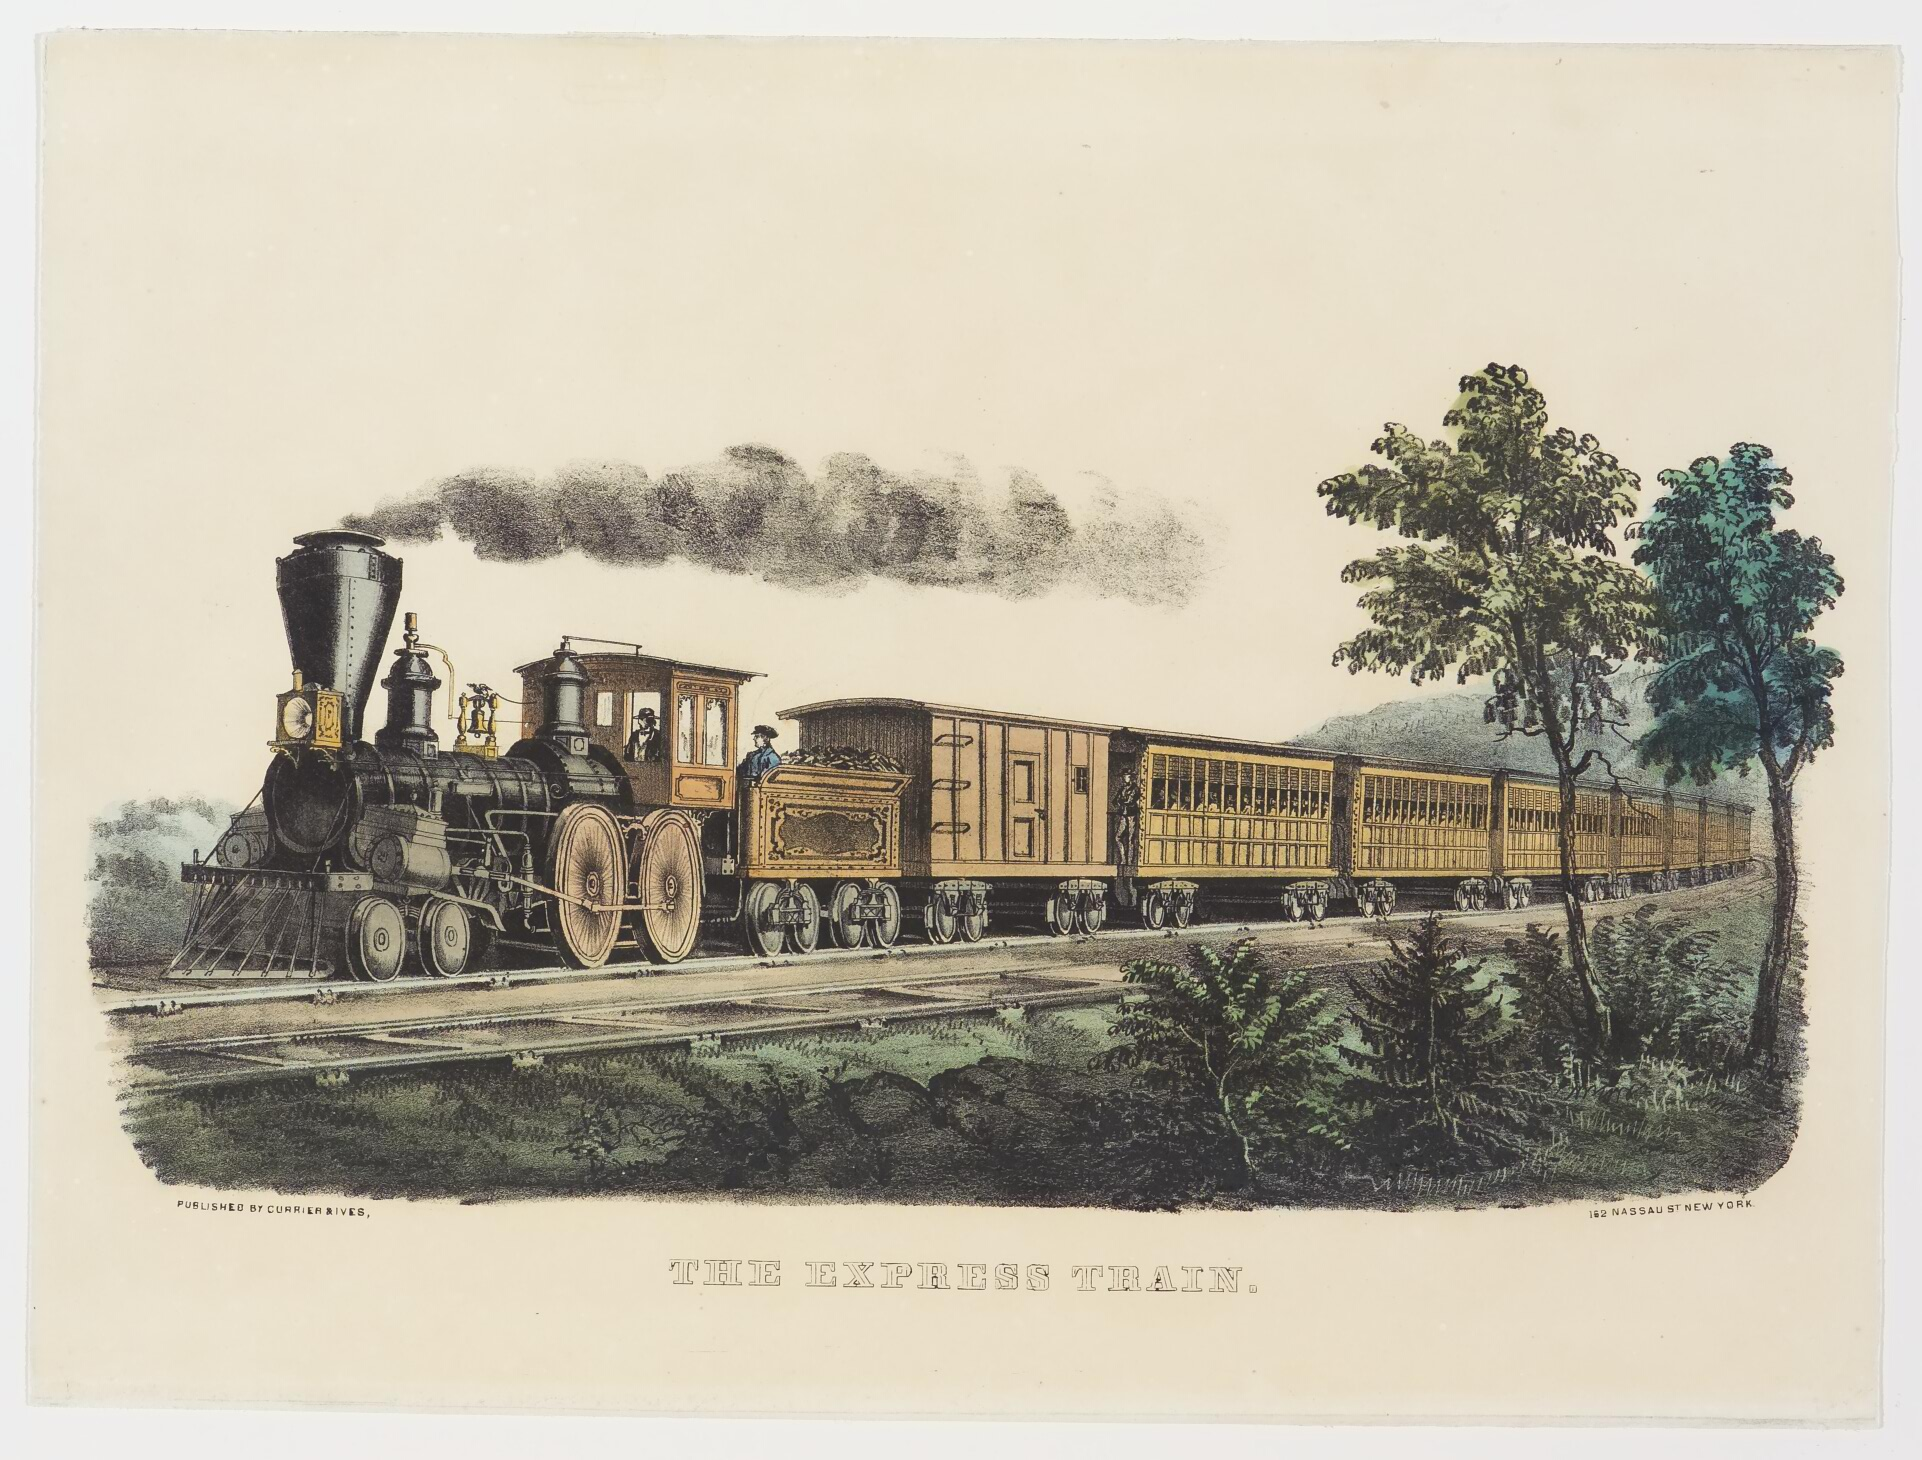 Engine with 9 cars including first being coal car; headed toward left in image alongside a second set of tracks